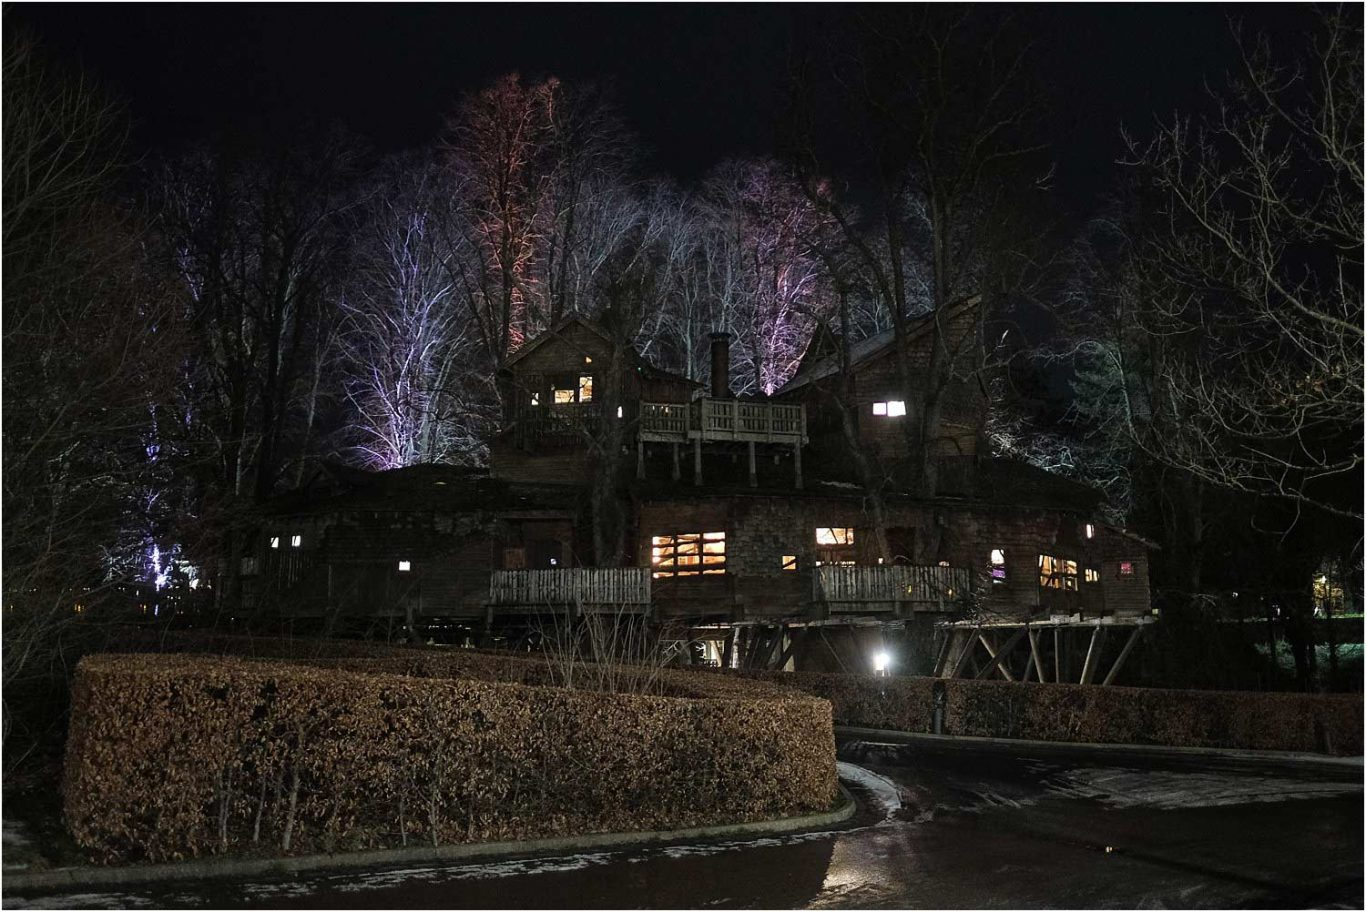 Alnwick Treehouse at Night